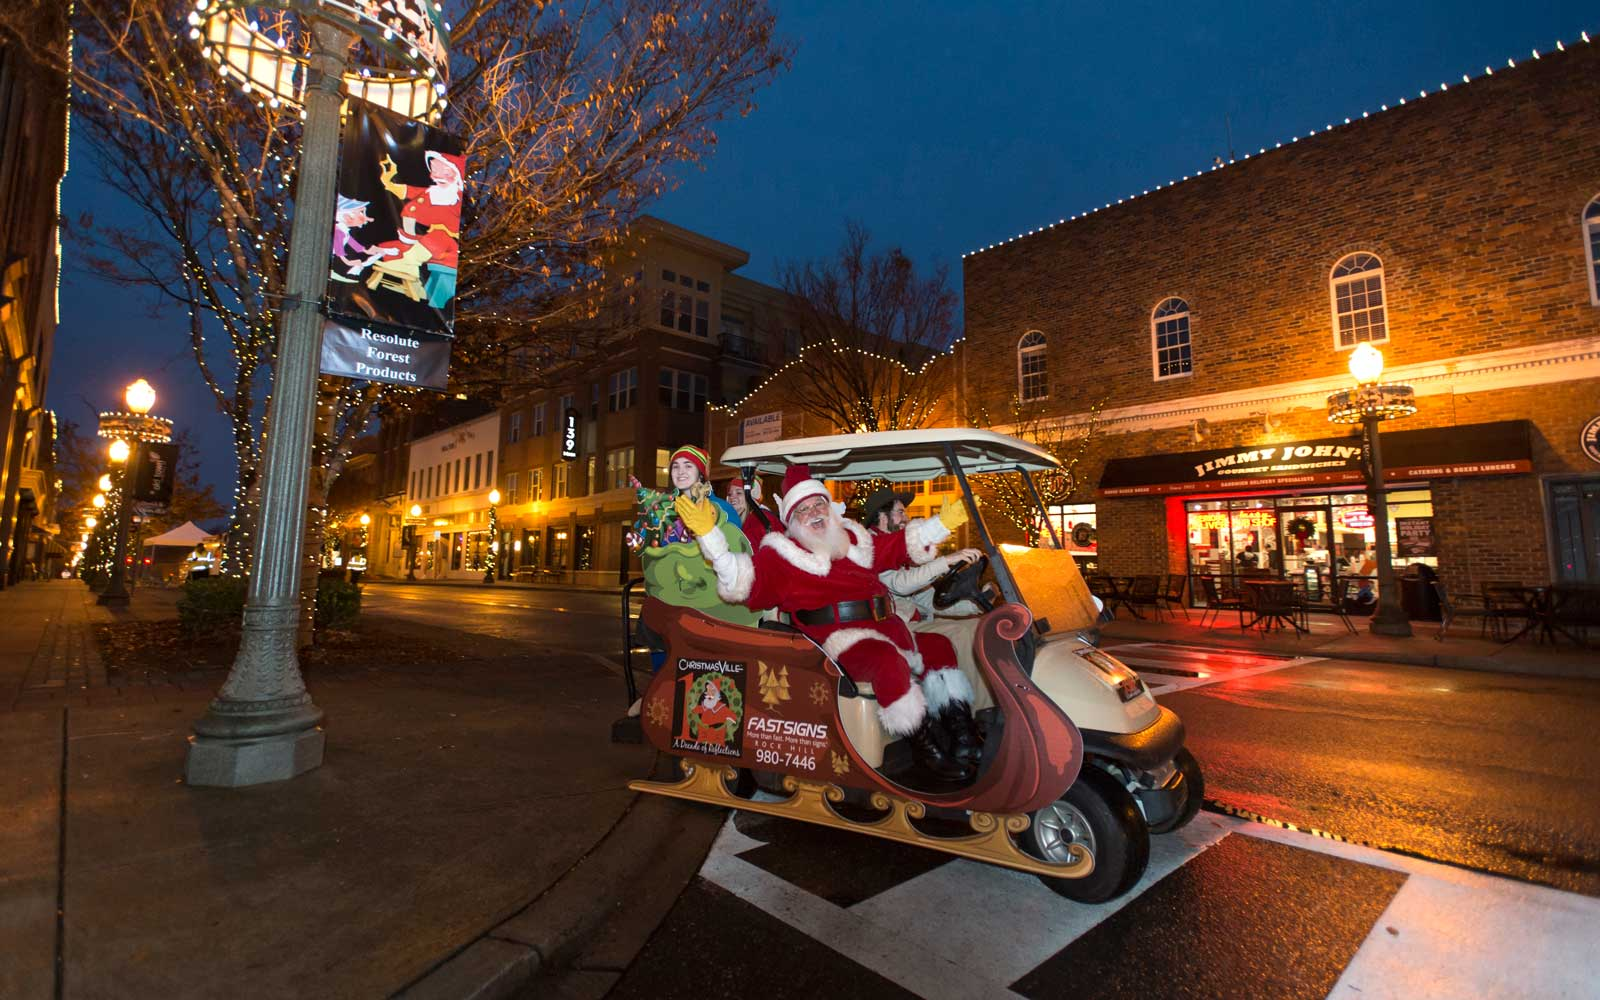 This South Carolina Town Transforms Into the North Pole Every Winter